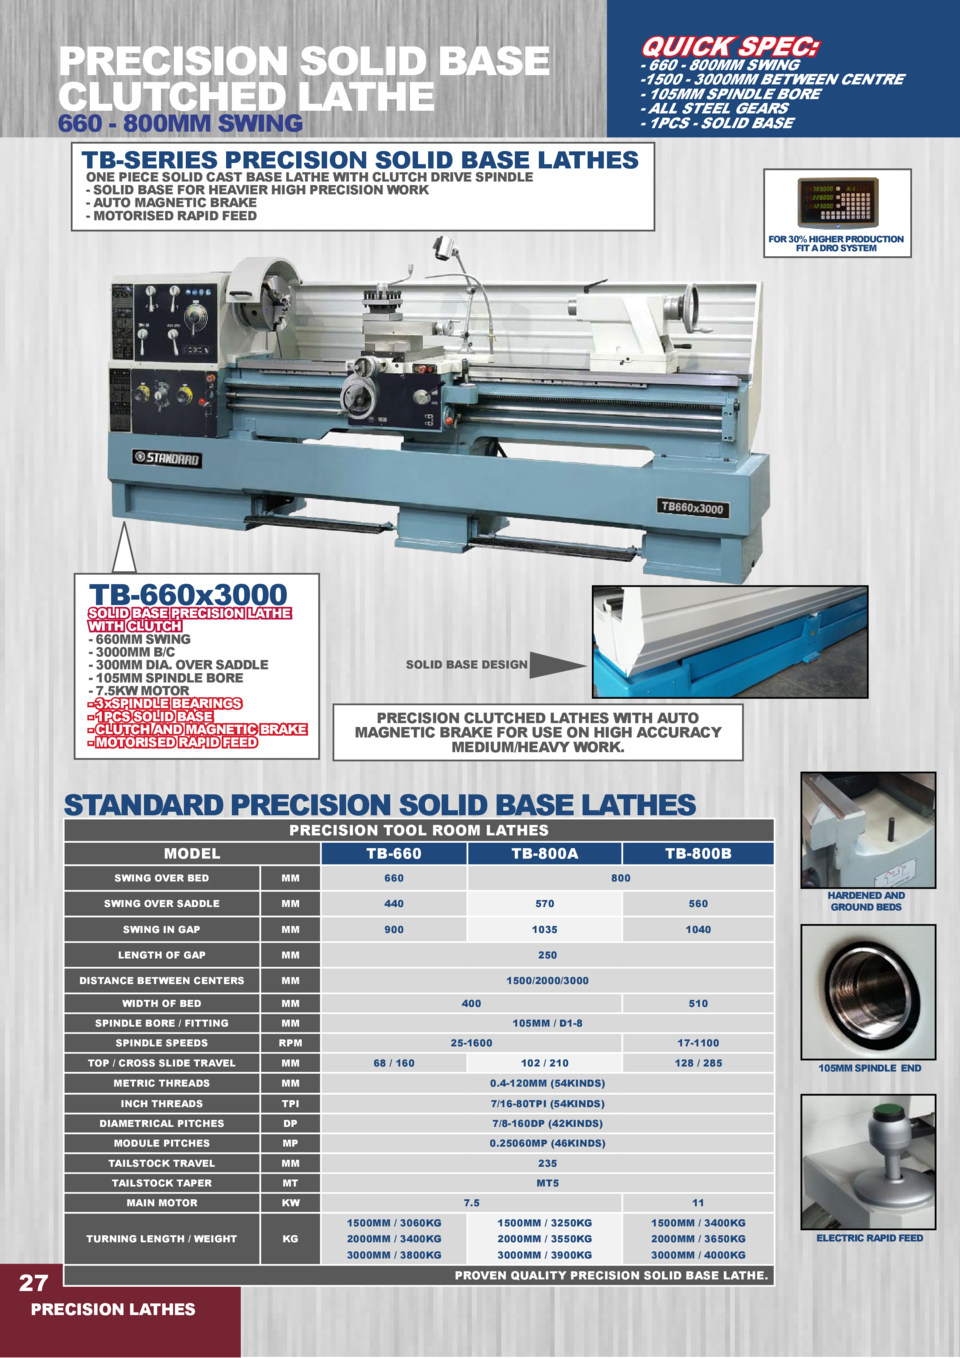 QUICK SPEC   PRECISION SOLID BASE CLUTCHED LATHE  - 660 - 800MM SWING -1500 - 3000MM BETWEEN CENTRE - 105MM SPINDLE BORE -...